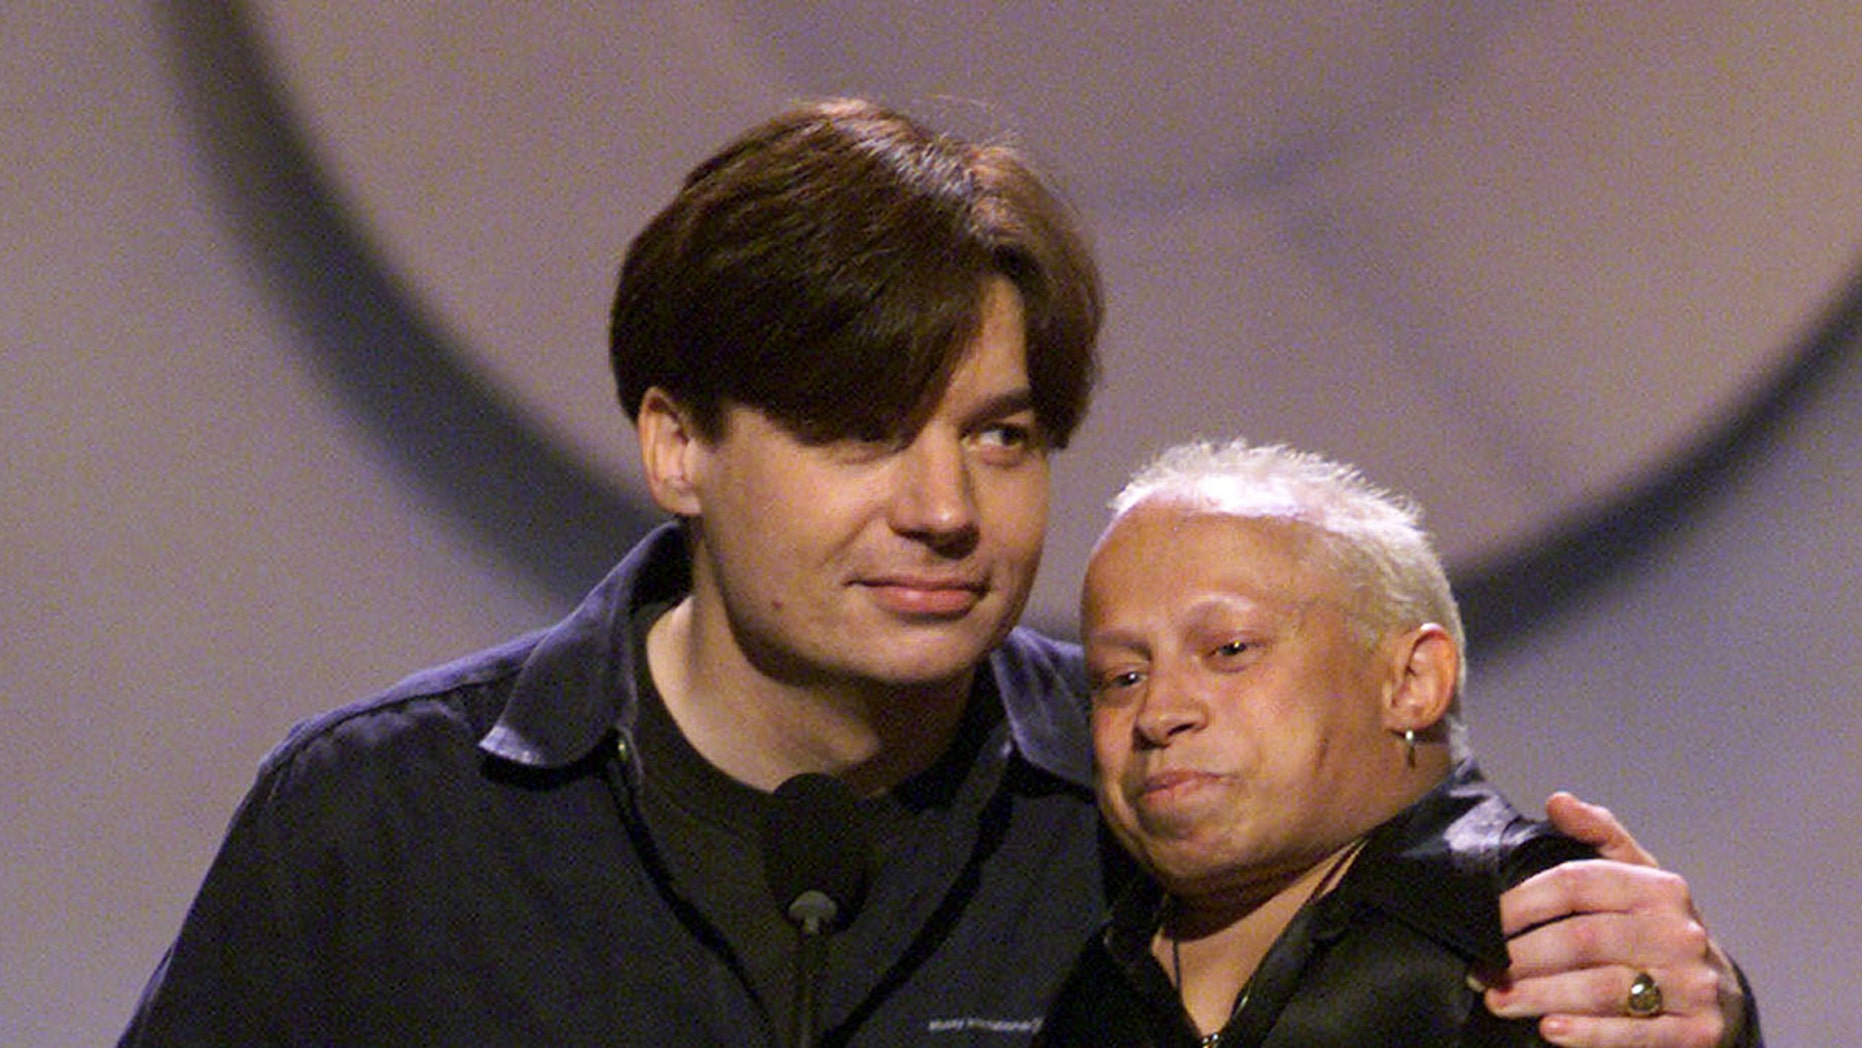 Mike Myers and Verne Troer accept an MTV Movie Award.